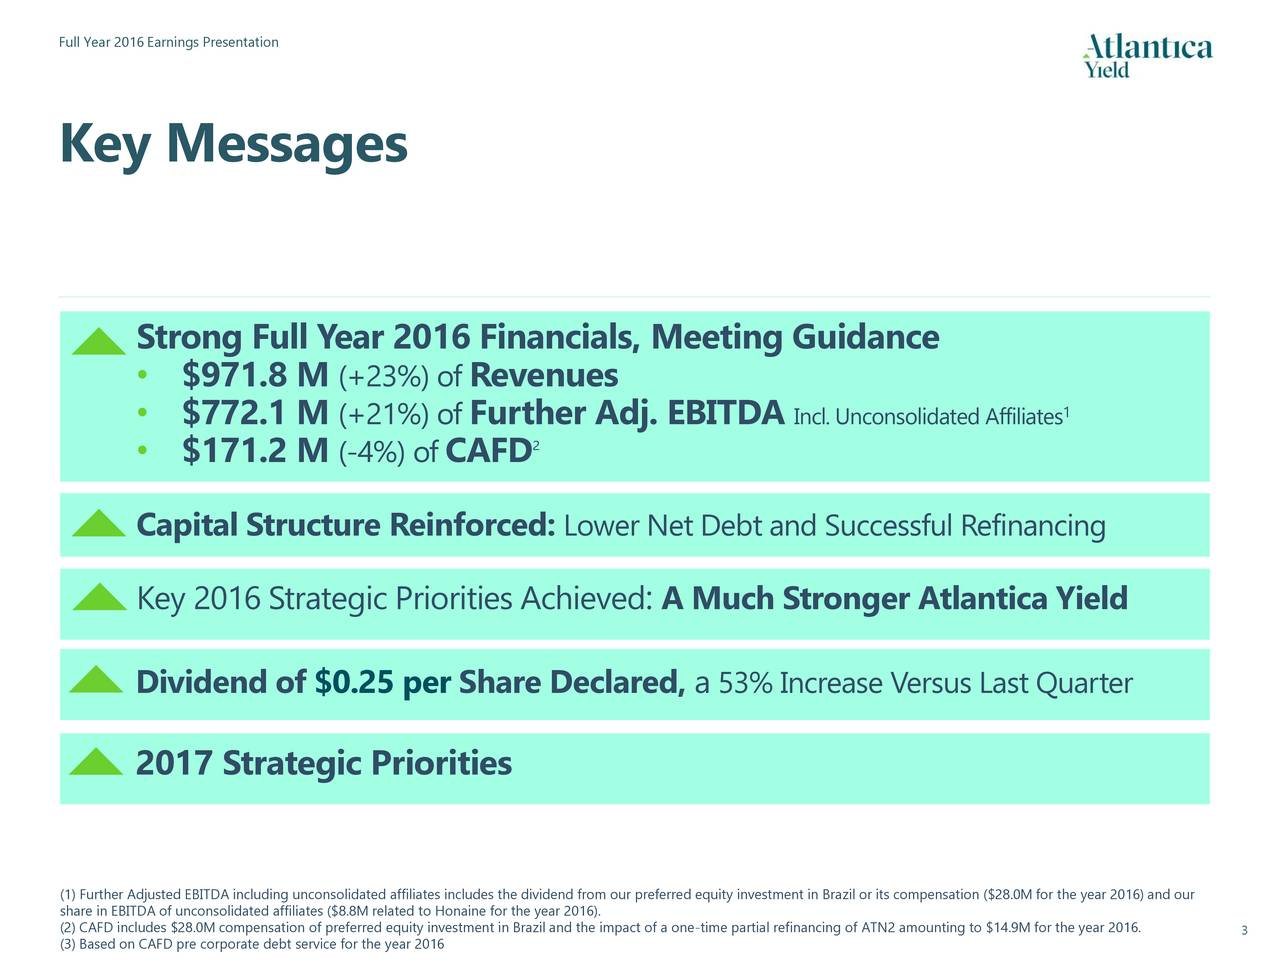 Key Messages Strong Full Y ear 2016 Financials, Meeting Guidance $971.8 M (+23%) of Revenues $772.1 M (+21%) of Further Adj. EBITDA Incl. Unconsolidated Affiliates $171.2 M (-4%) of CAFD 2 Capital Structure Reinforced: Lower Net Debt and Successful Refinancing Key 2016 Strategic Priorities Achieved : A Much Stronger Atlantica Yield Dividend of $0.25 per Share Declared, a 53% Increase Versus Last Quarter 2017 Strategic Priorities share in EBITDA of unconsolidated affiliates ($8.8M related to Honaine for the year 2016). our preferred equity investment in Brazil or its compensation ($28.0M for the year 2016) and our (2) CAFD includes $28.0M compensation of preferred equity investment in Brazil and the impact3of a one-time partial refinancing of ATN2 amounting to $14.9M for the year 2016.